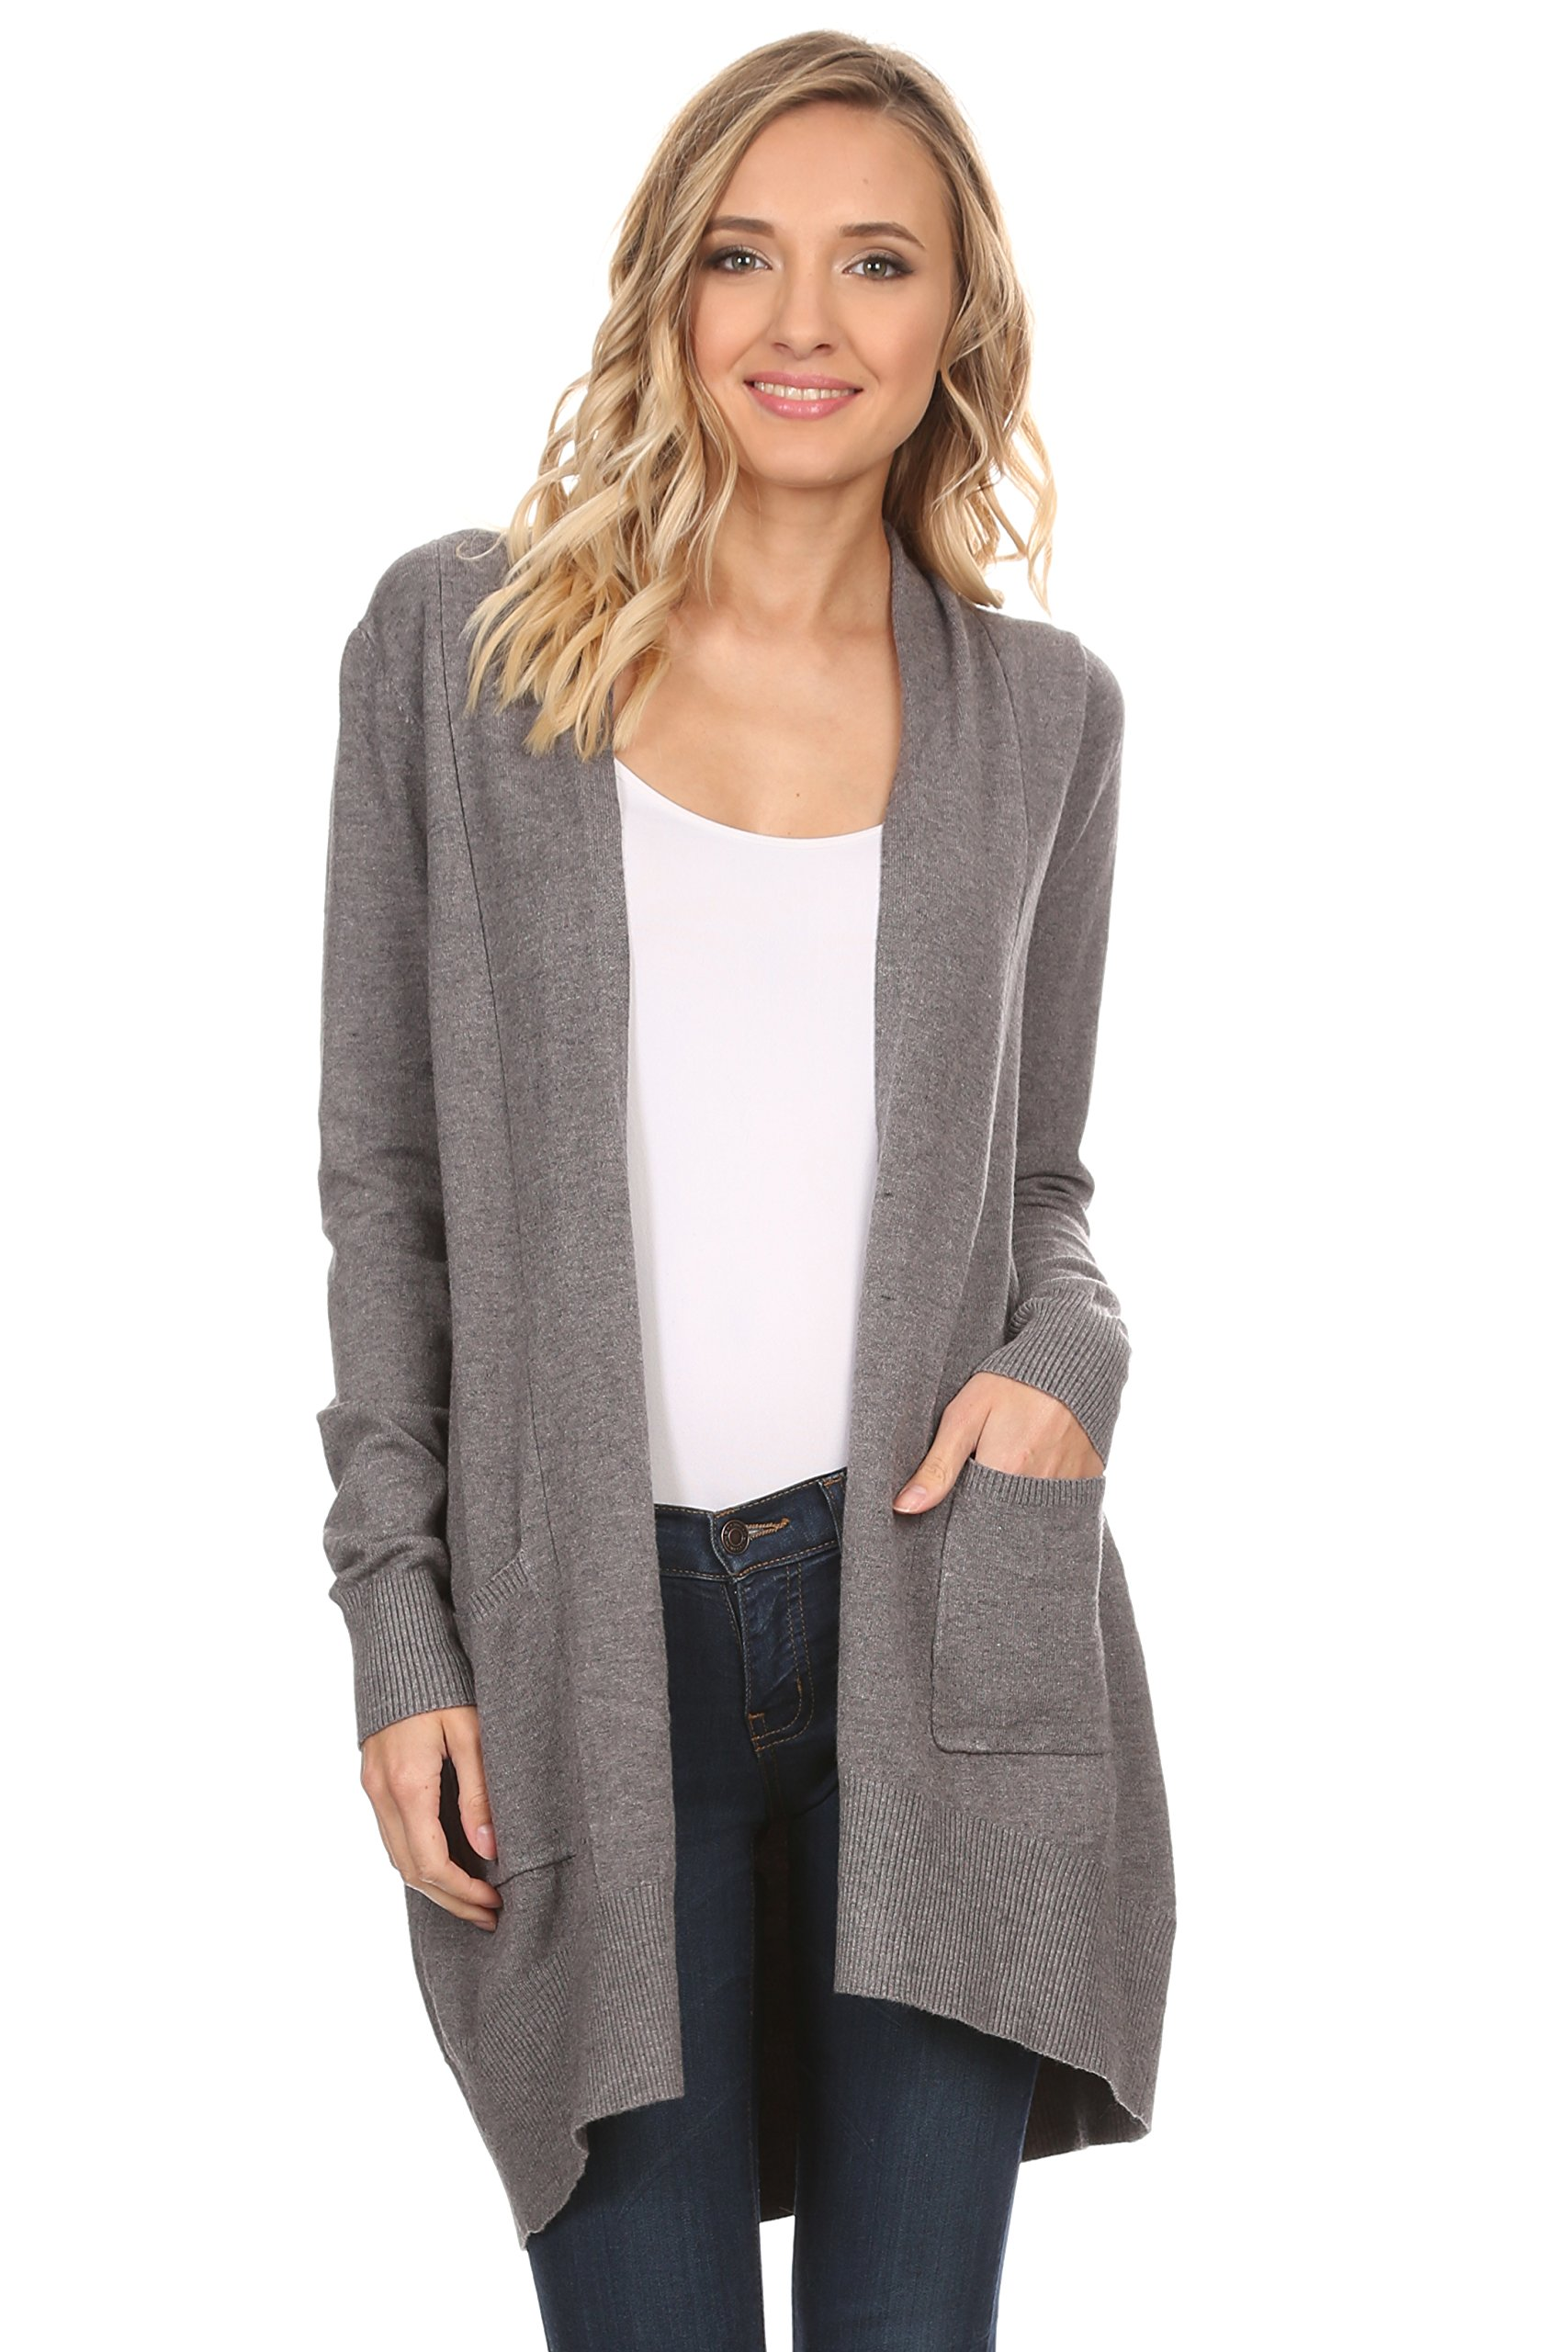 A+D Womens Basic Open Front Knit Cardigan Sweater Top w/Pockets (Charcoal, Small/Medium)